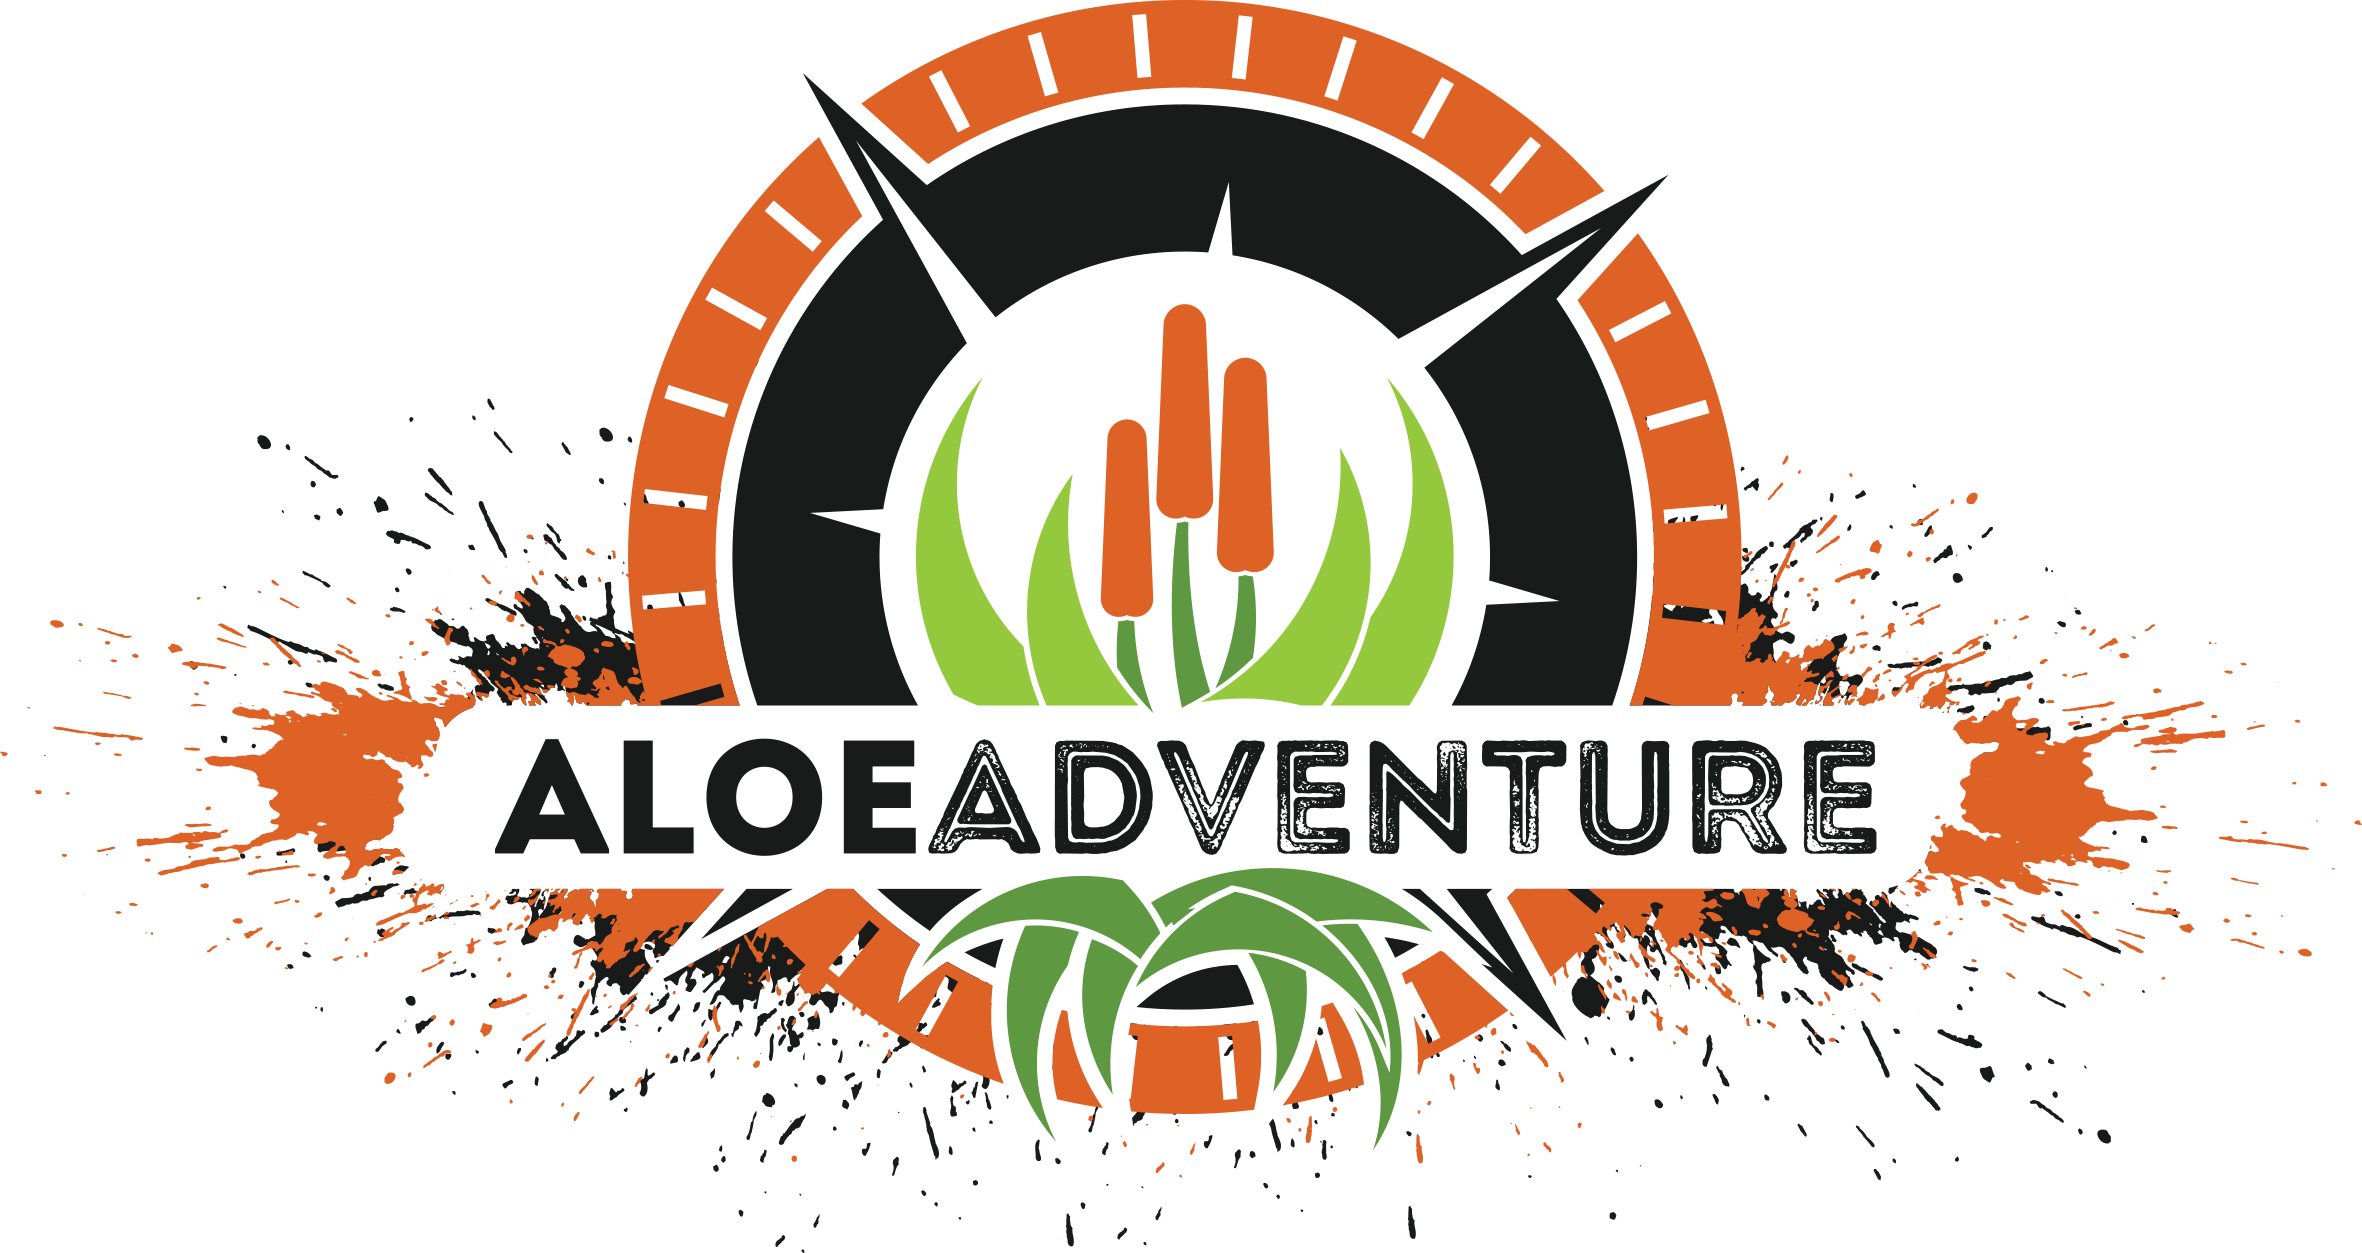 Aloe to Adventure